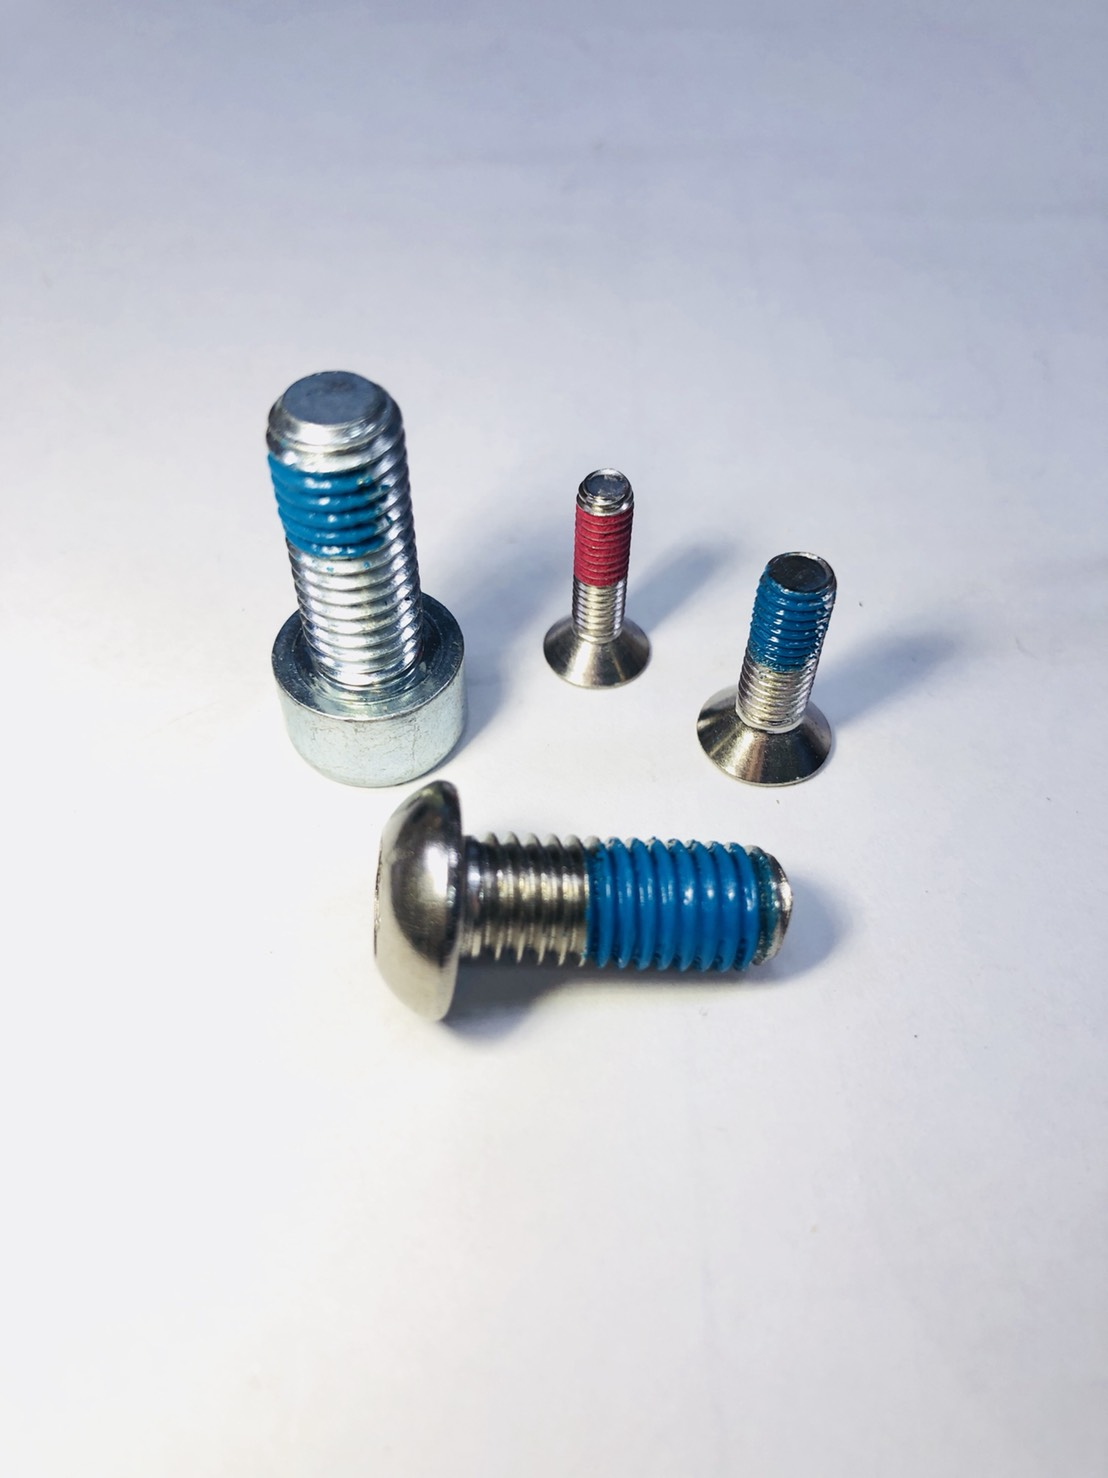 Hex head bolts, Carriage bolts, Truss head bolts, Hex washer head bolts, and T bolts.